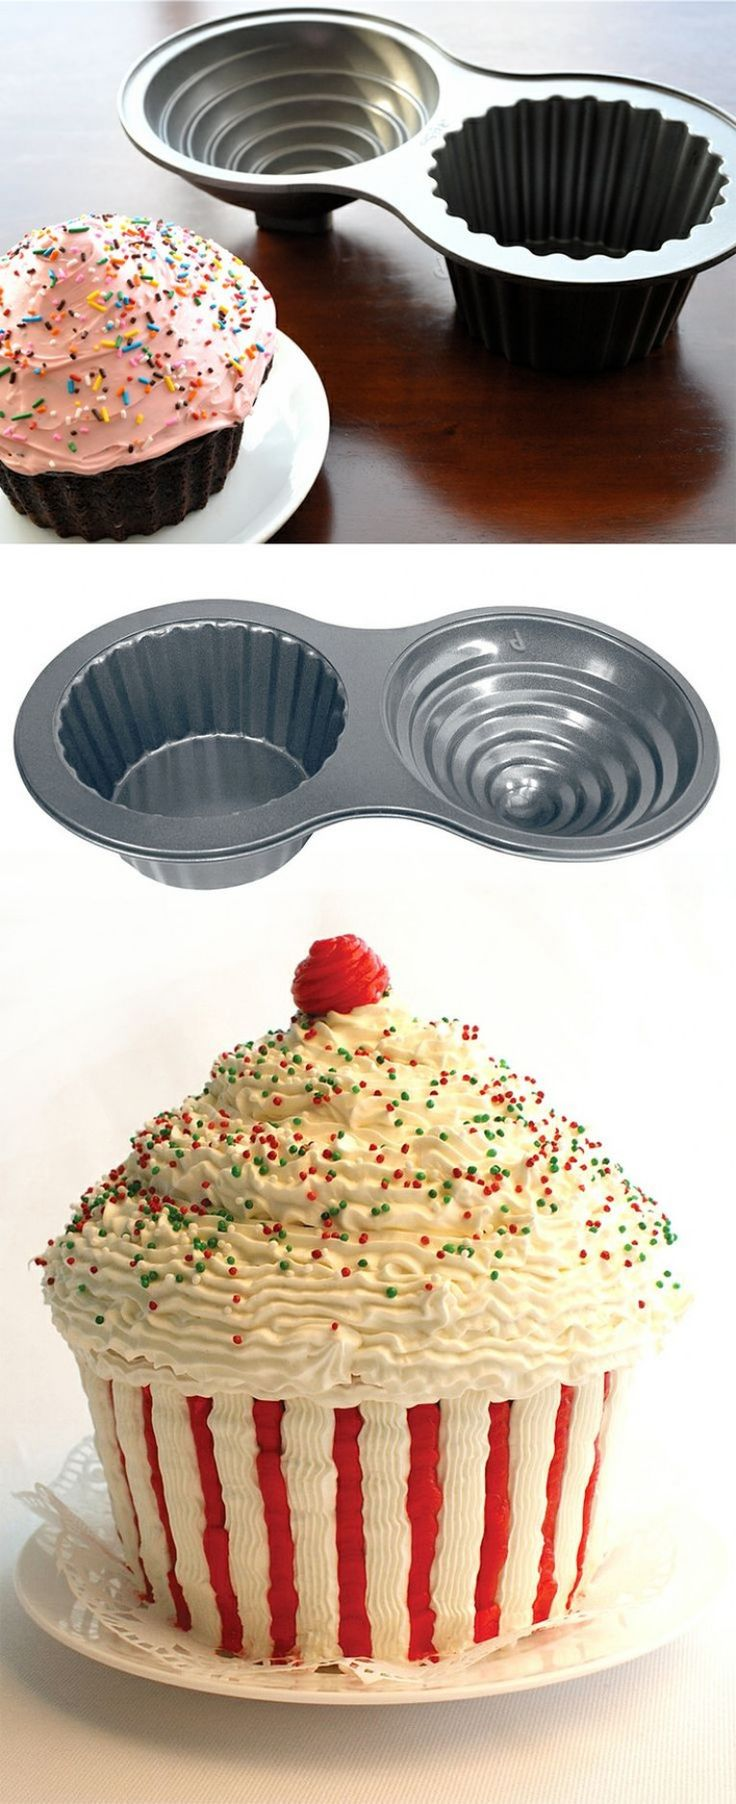 The best way to make a giant and impressive cupcake for the birthday party by this non-stick large cupcake pan. The non-stick surface makes sure an easy removal and hassle free clean up.